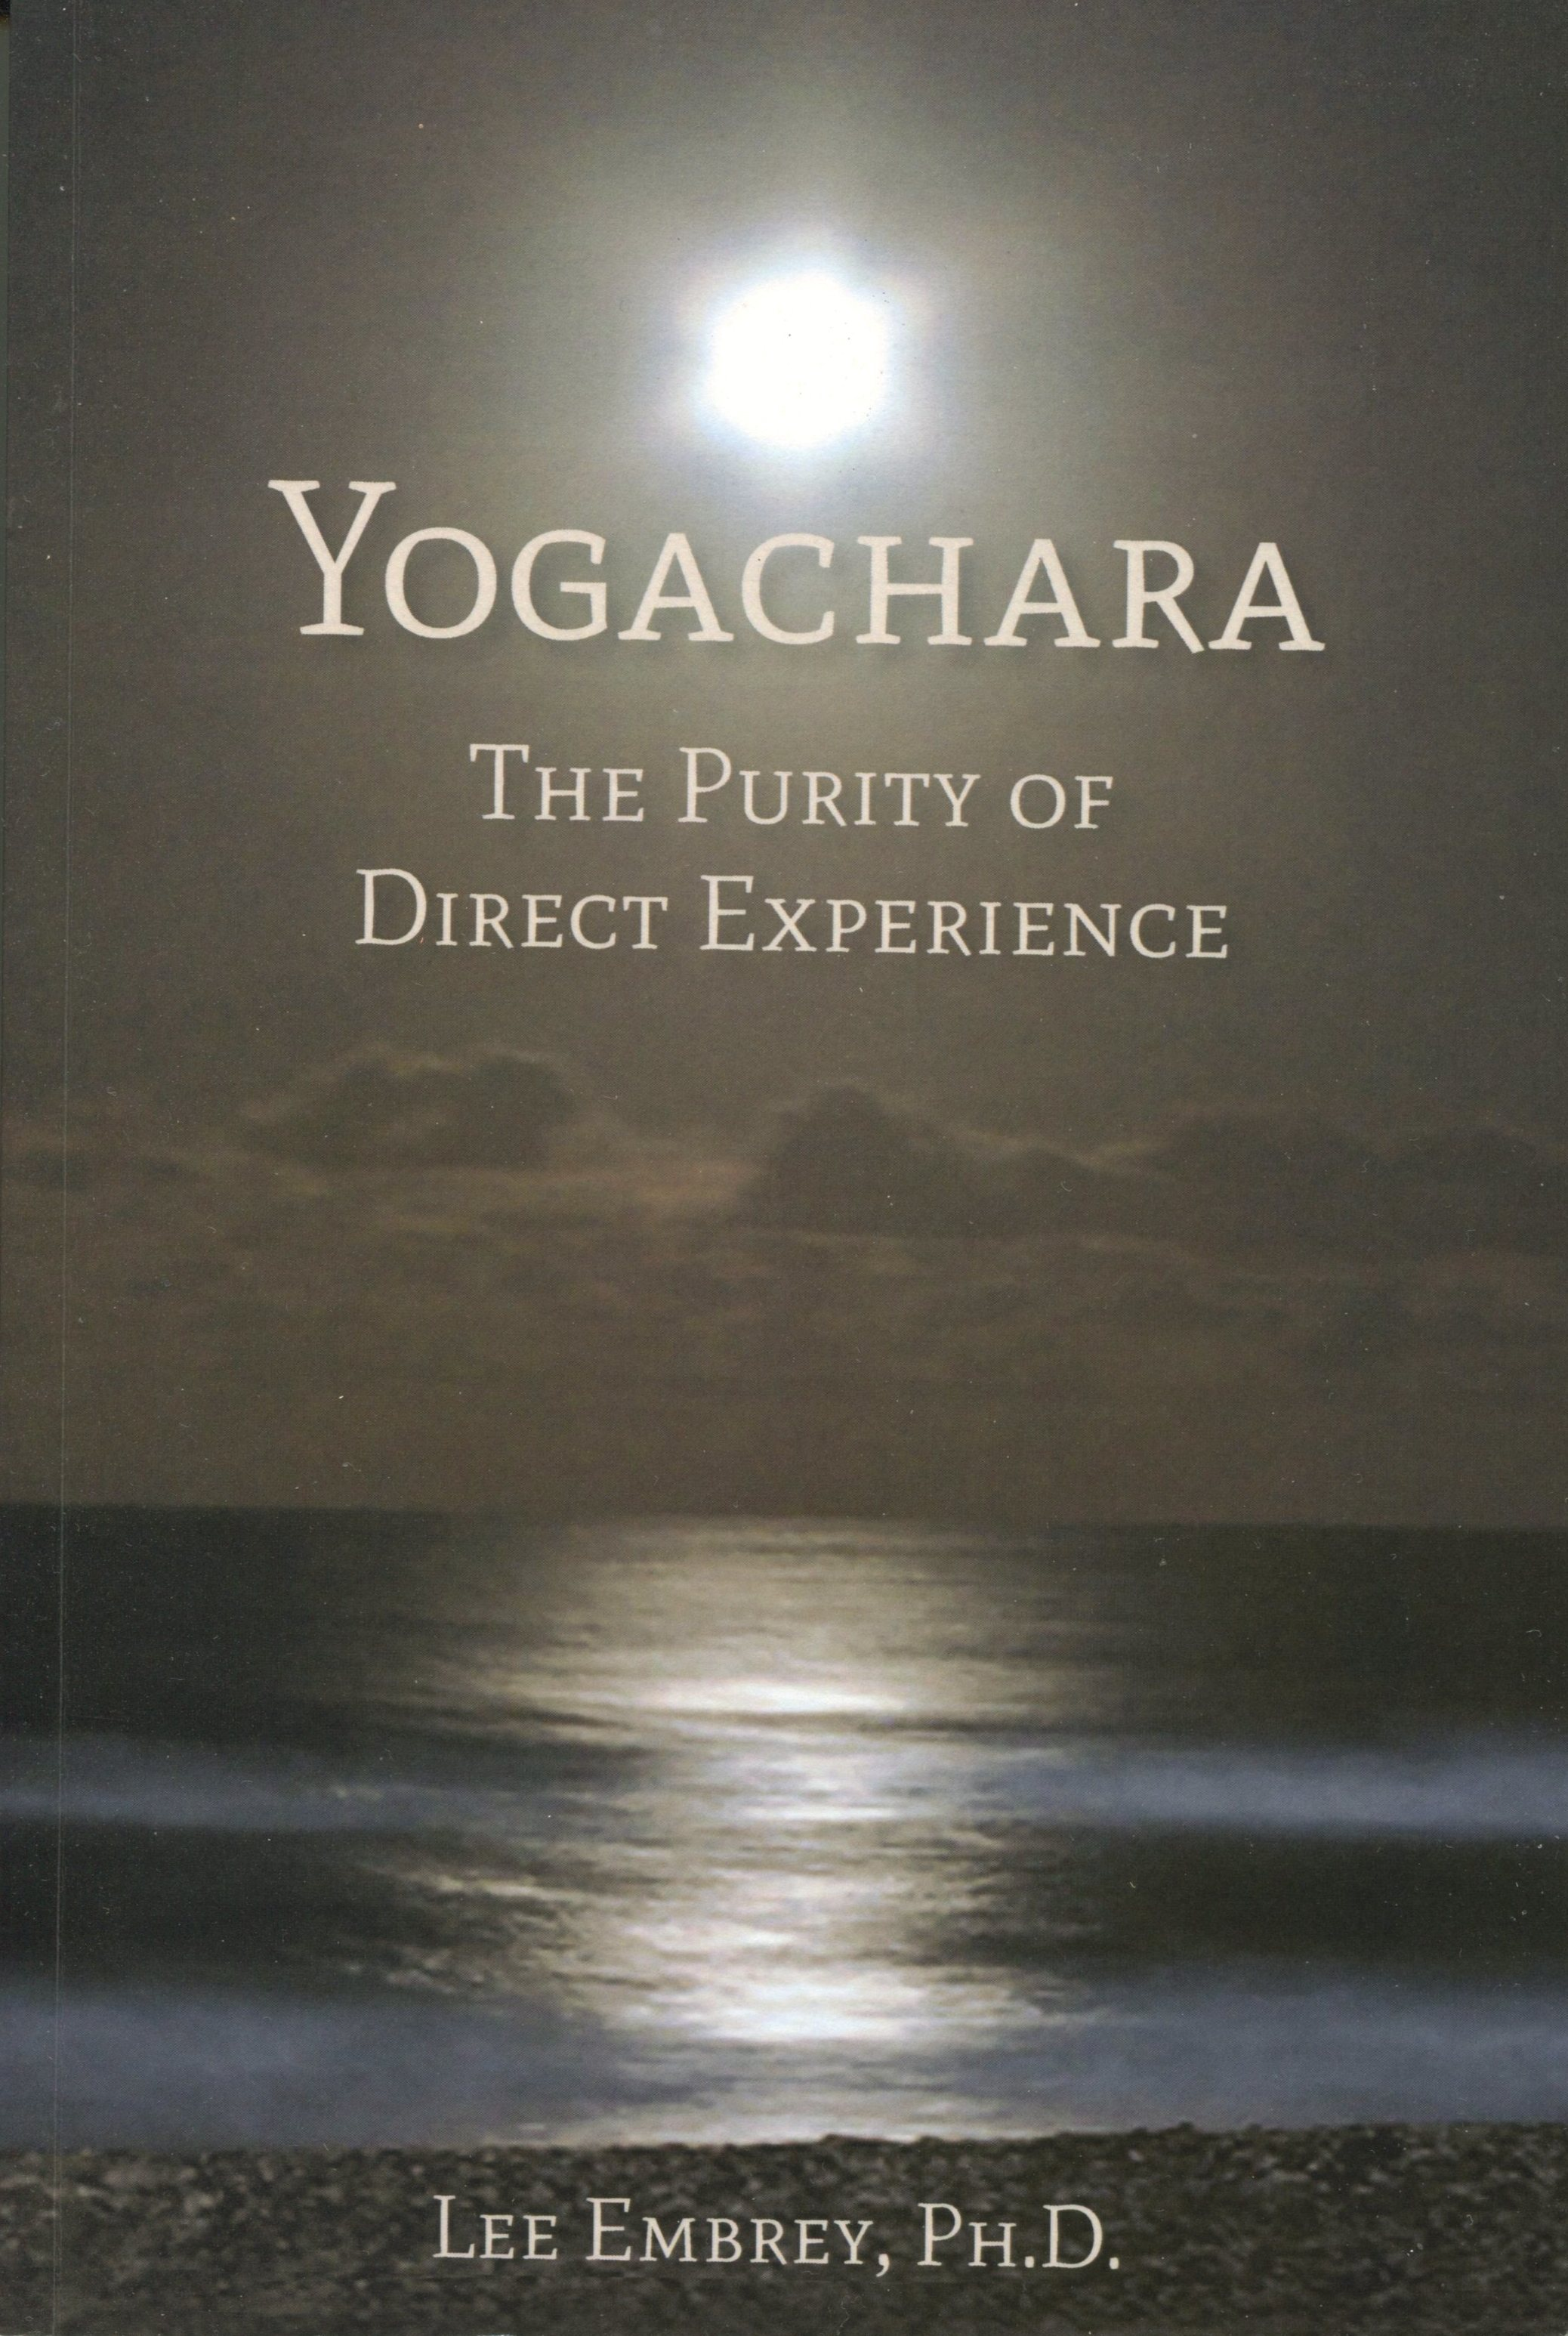 Self-publishing - Yogachara.jpg